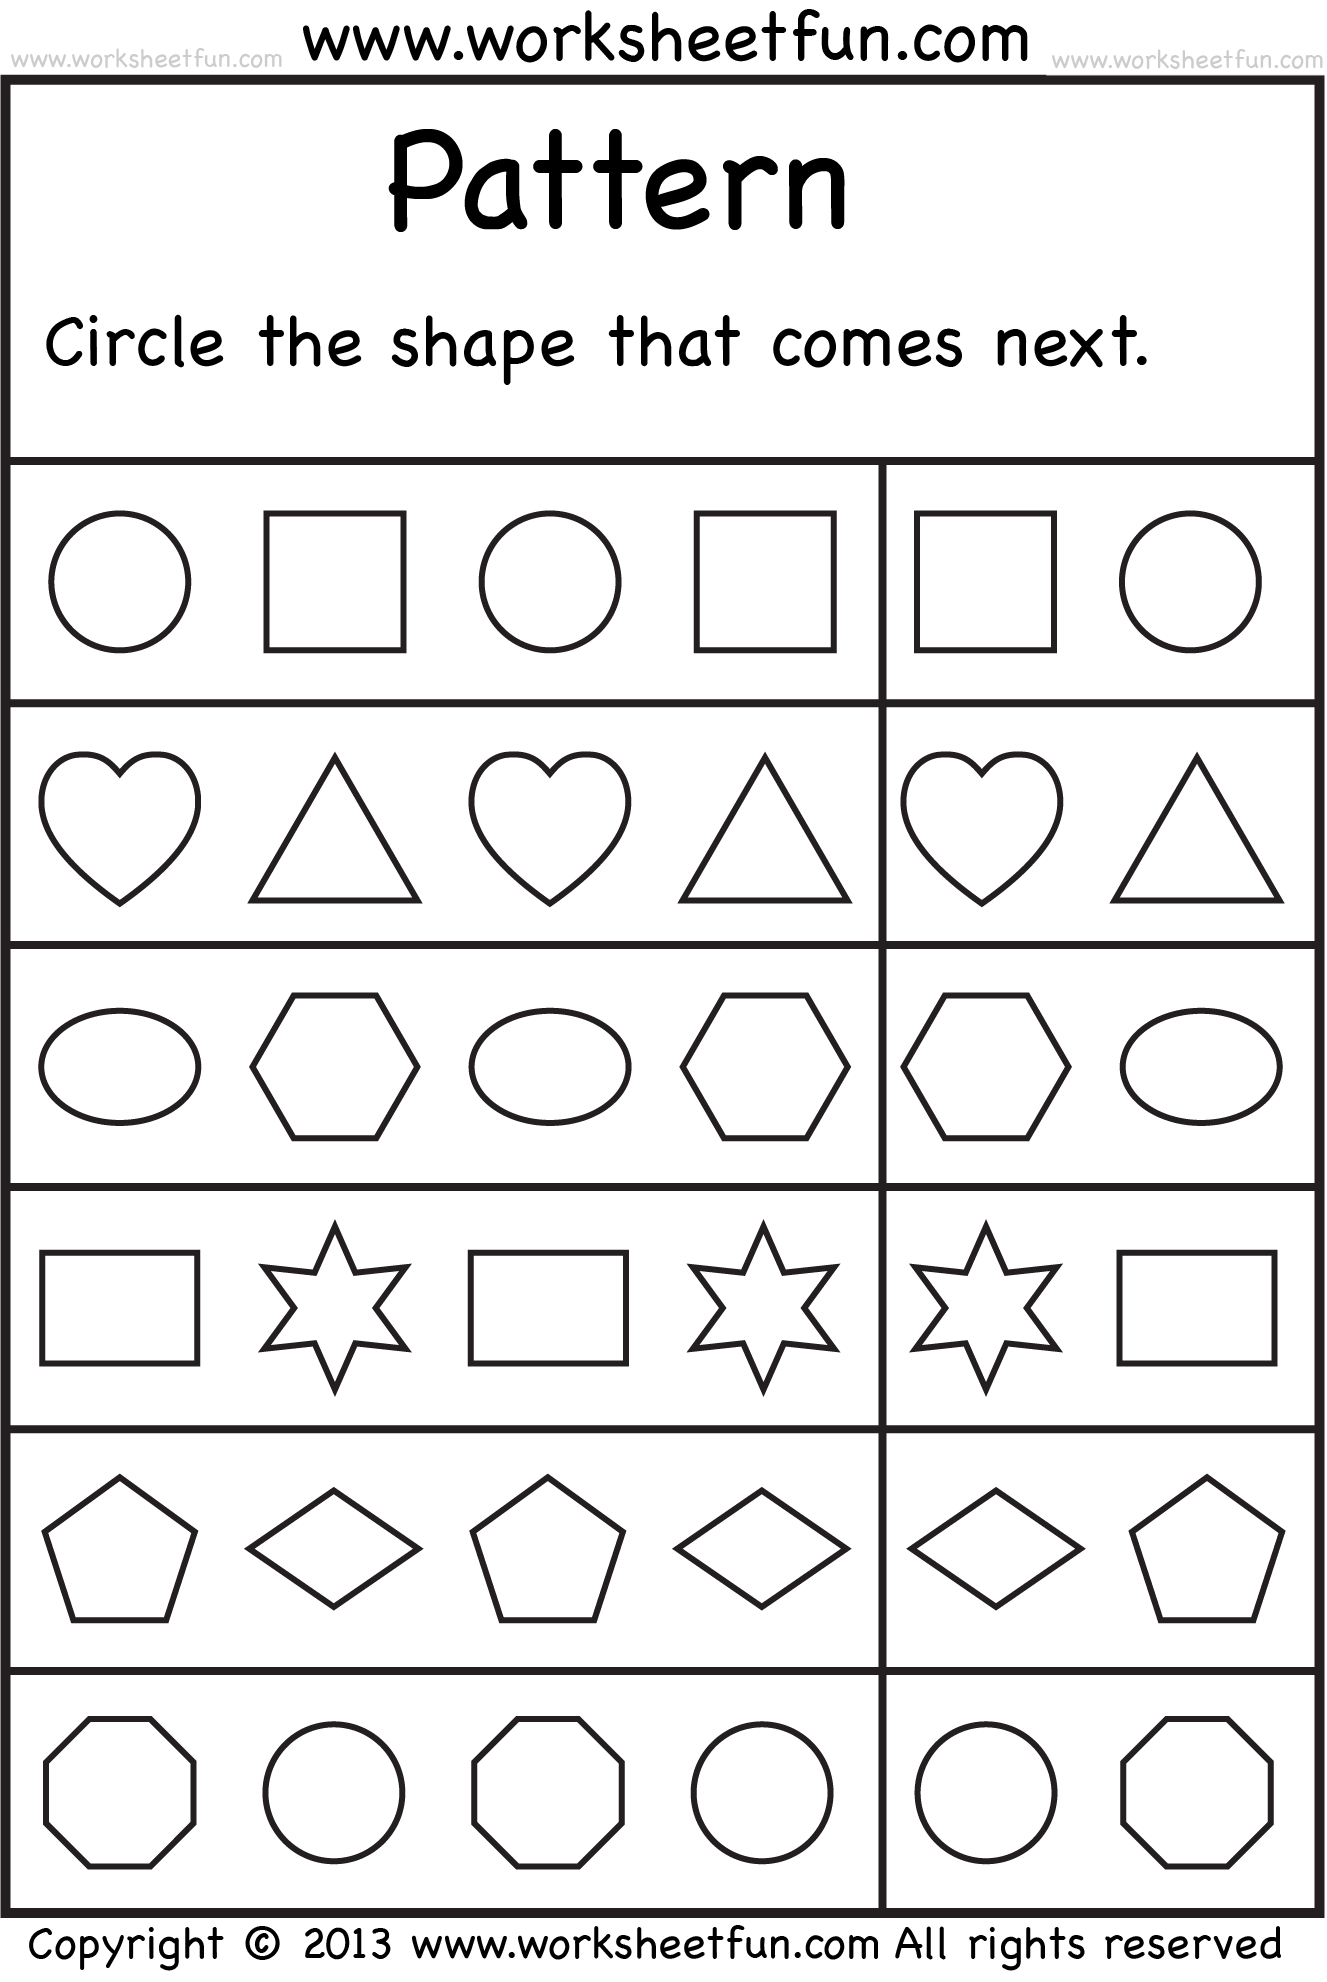 Proatmealus  Splendid  Images About School Worksheets On Pinterest  Number Words  With Fetching  Images About School Worksheets On Pinterest  Number Words Alphabet Worksheets And Free Printable Kindergarten Worksheets With Beautiful Vba Excel Copy Worksheet Also Fever  Worksheets In Addition Good Character Worksheets And Alphabet Symmetry Worksheet As Well As Critical Reading Worksheet Additionally Complementary And Supplementary Worksheet From Pinterestcom With Proatmealus  Fetching  Images About School Worksheets On Pinterest  Number Words  With Beautiful  Images About School Worksheets On Pinterest  Number Words Alphabet Worksheets And Free Printable Kindergarten Worksheets And Splendid Vba Excel Copy Worksheet Also Fever  Worksheets In Addition Good Character Worksheets From Pinterestcom